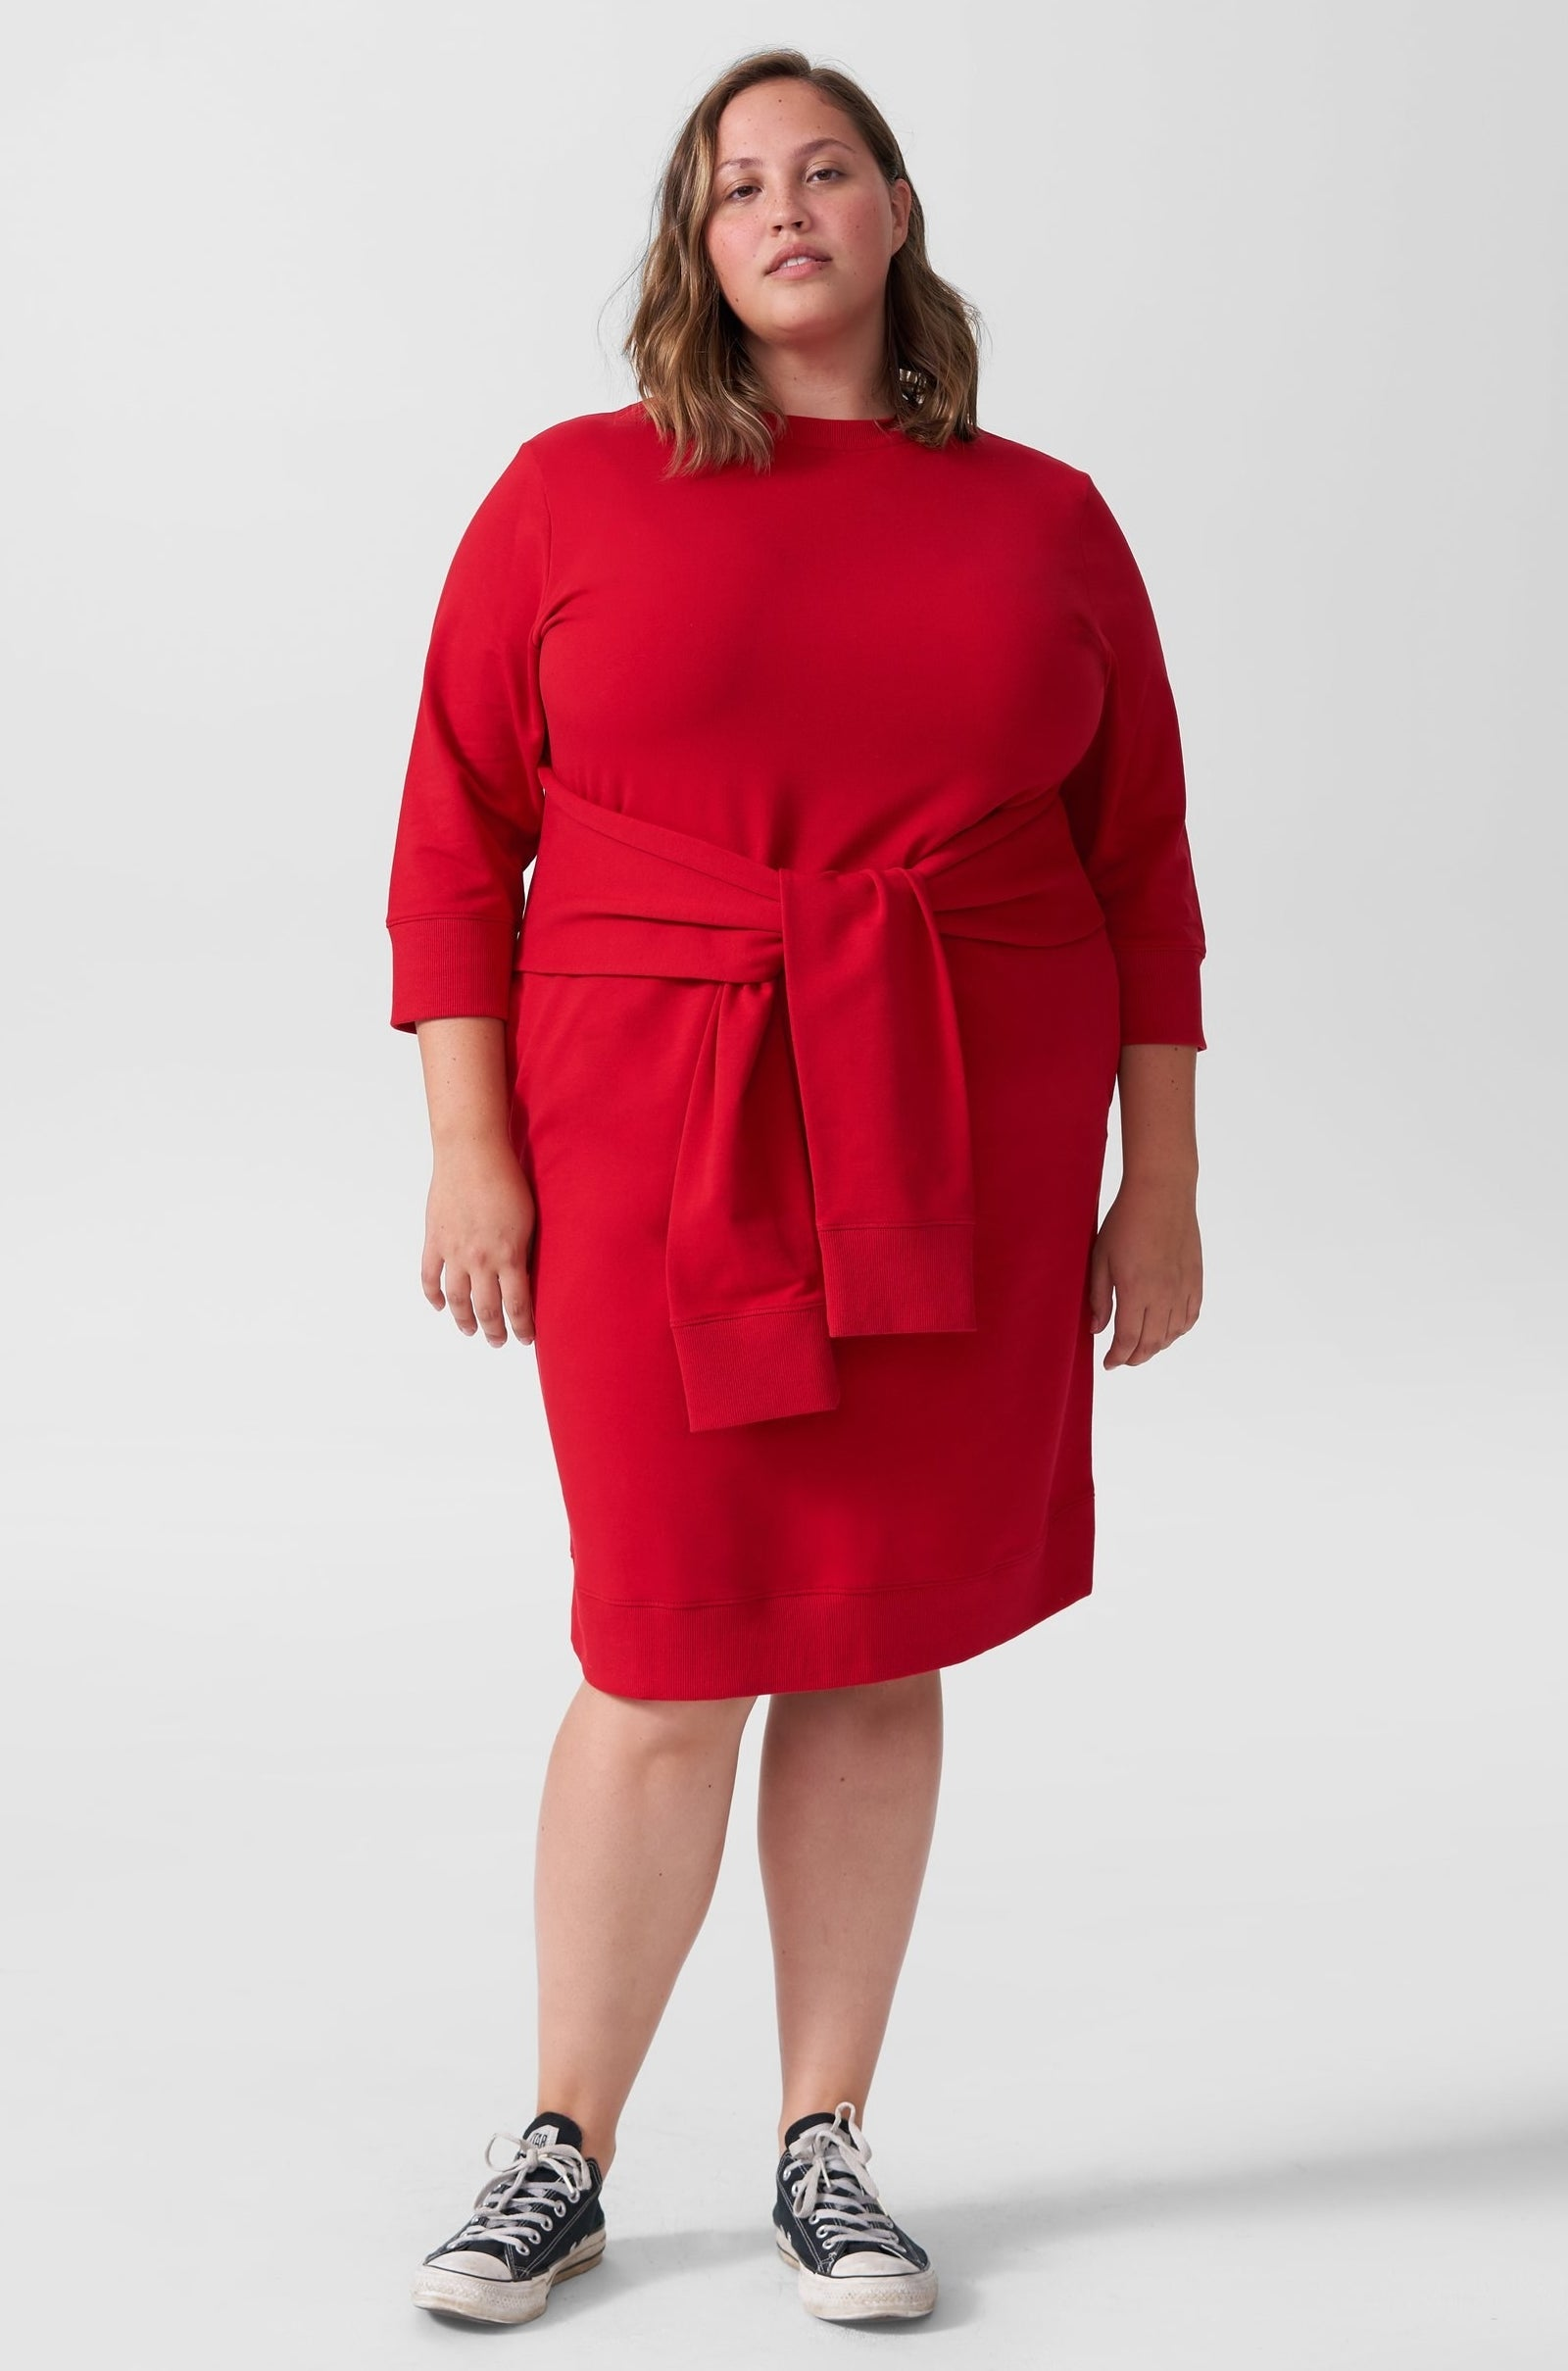 model in red knee length three quarter sleeve dress with additional sleeve-style ties that knot around the waist